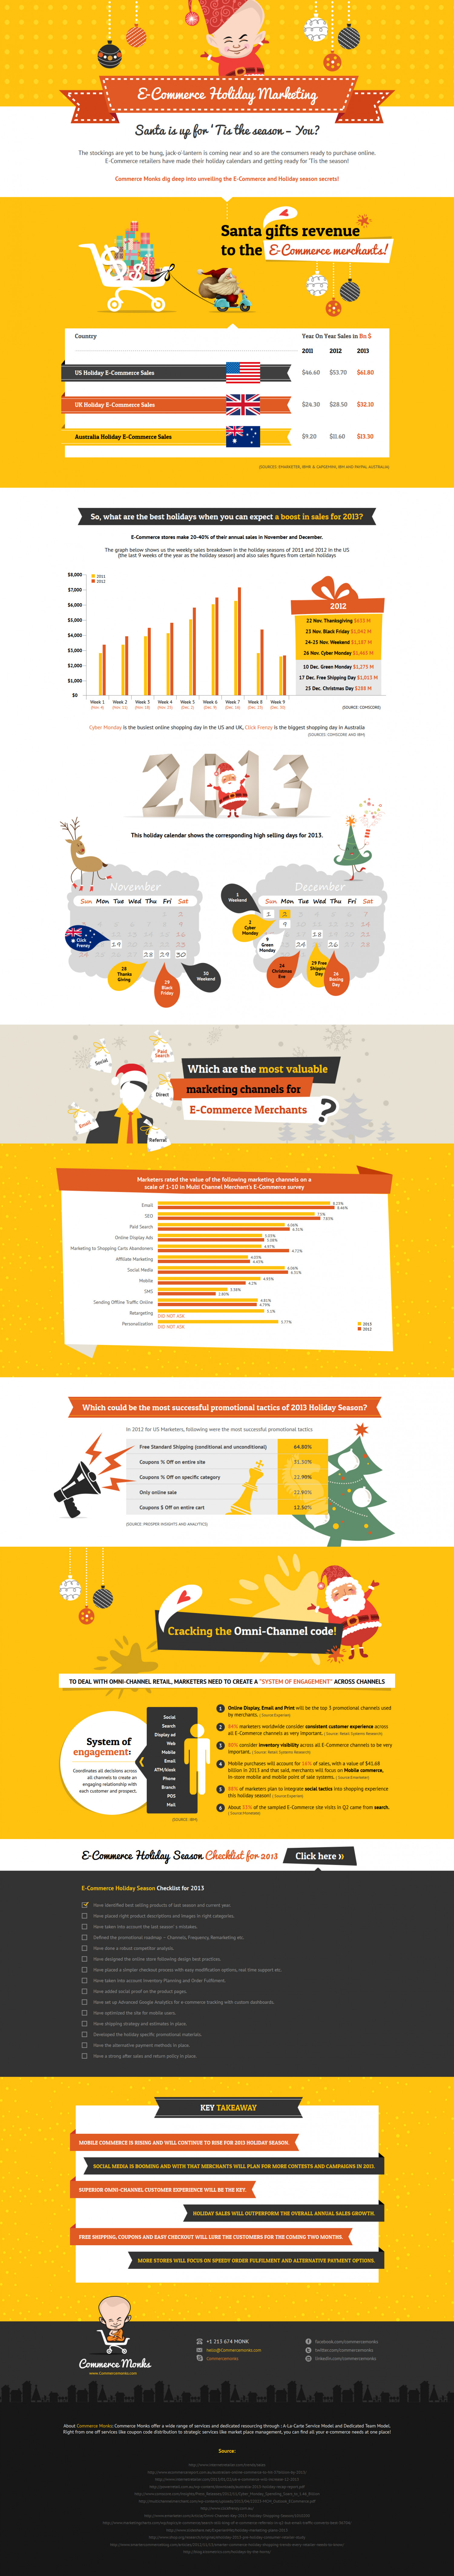 E-Commerce Holiday Marketing: Santa is up for 'Tis the season and you?  Infographic